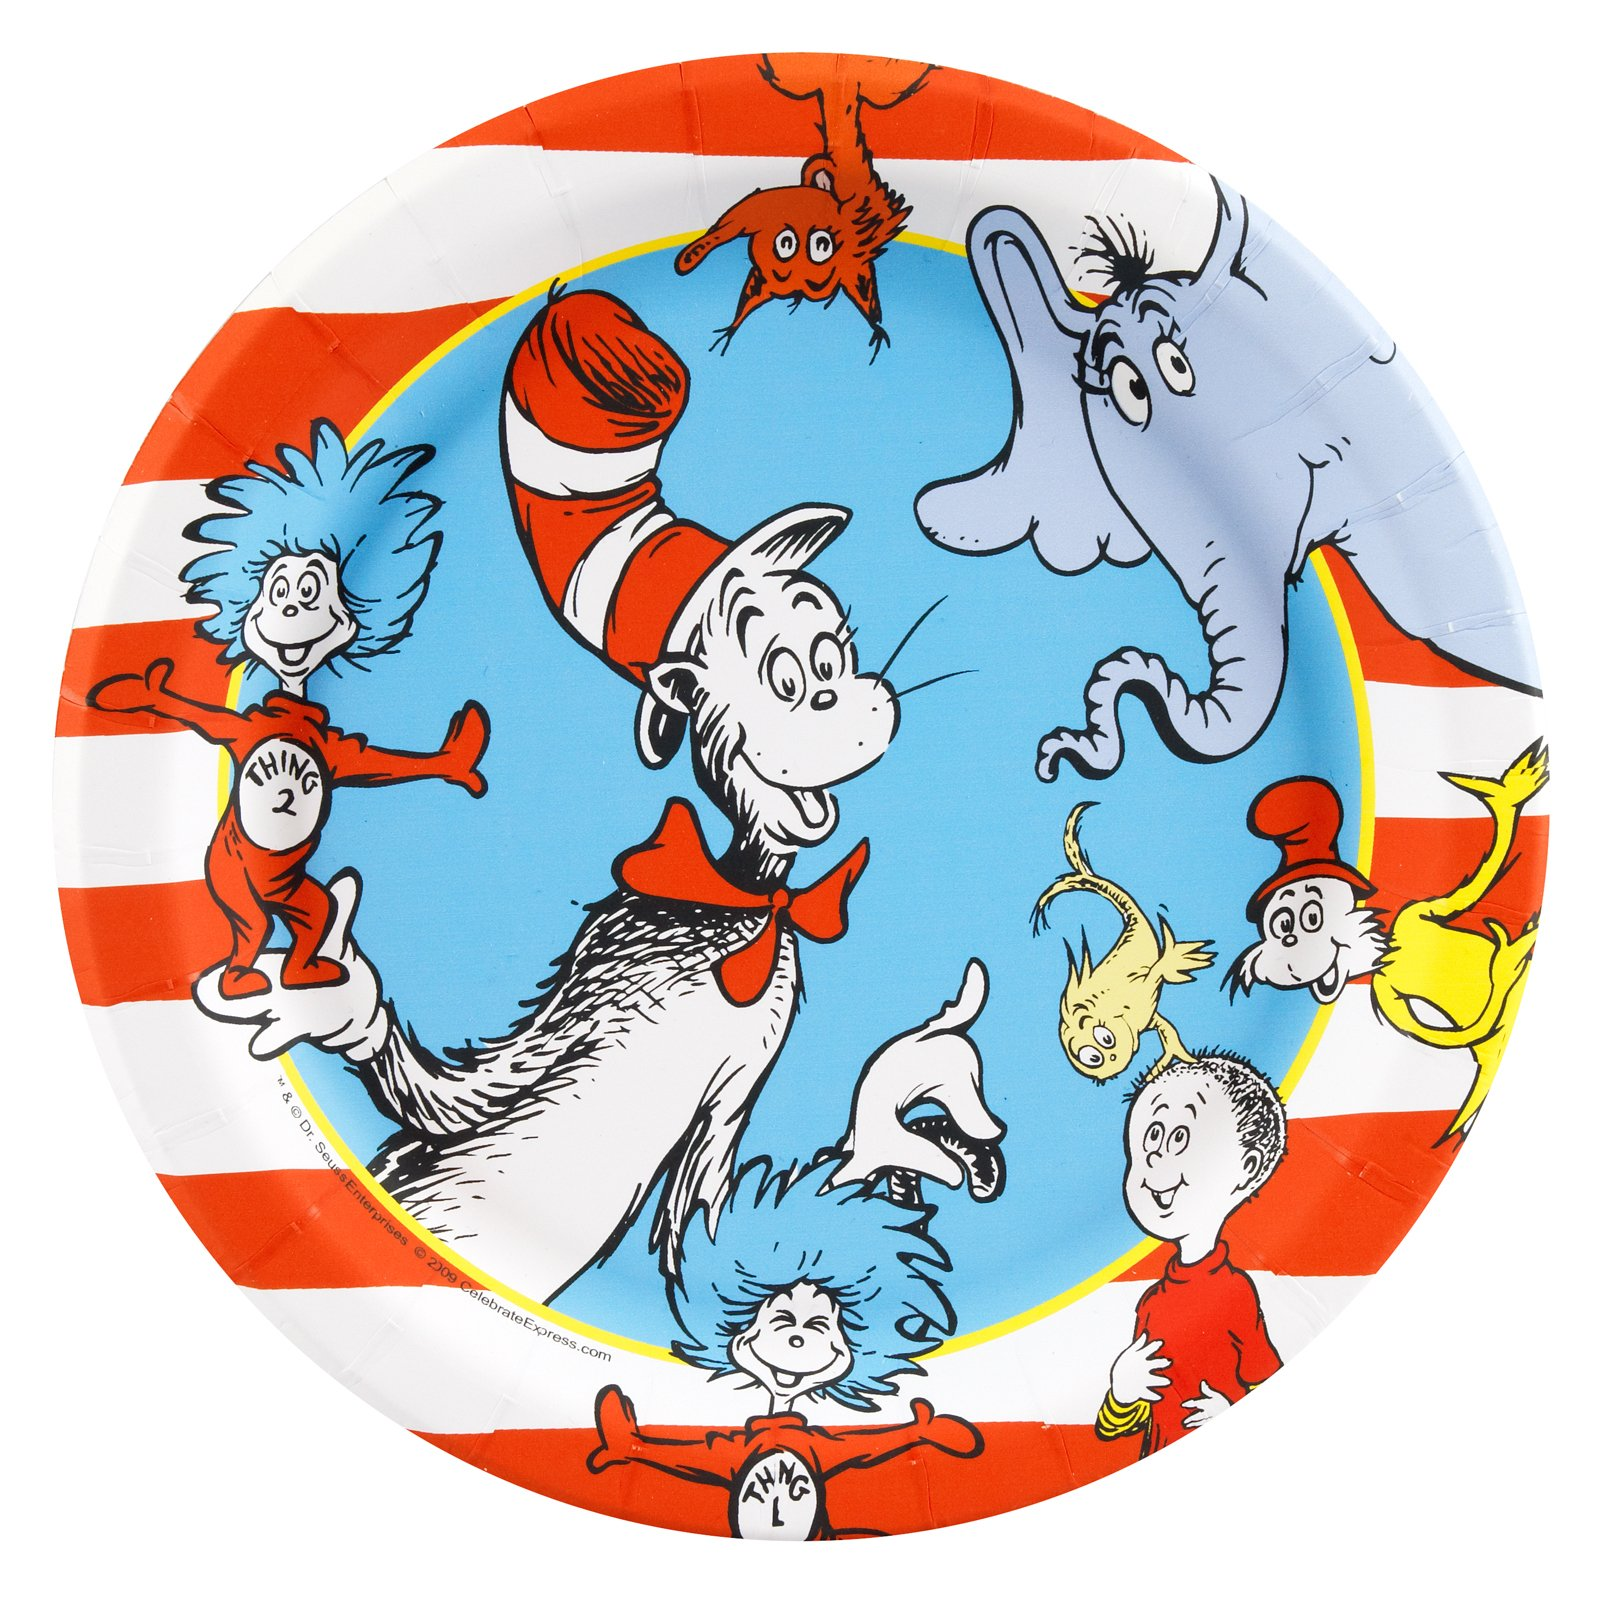 Cat In The Hat Characters: BirthdayExpress.com Hosts Dr. Seuss 75 Years Of